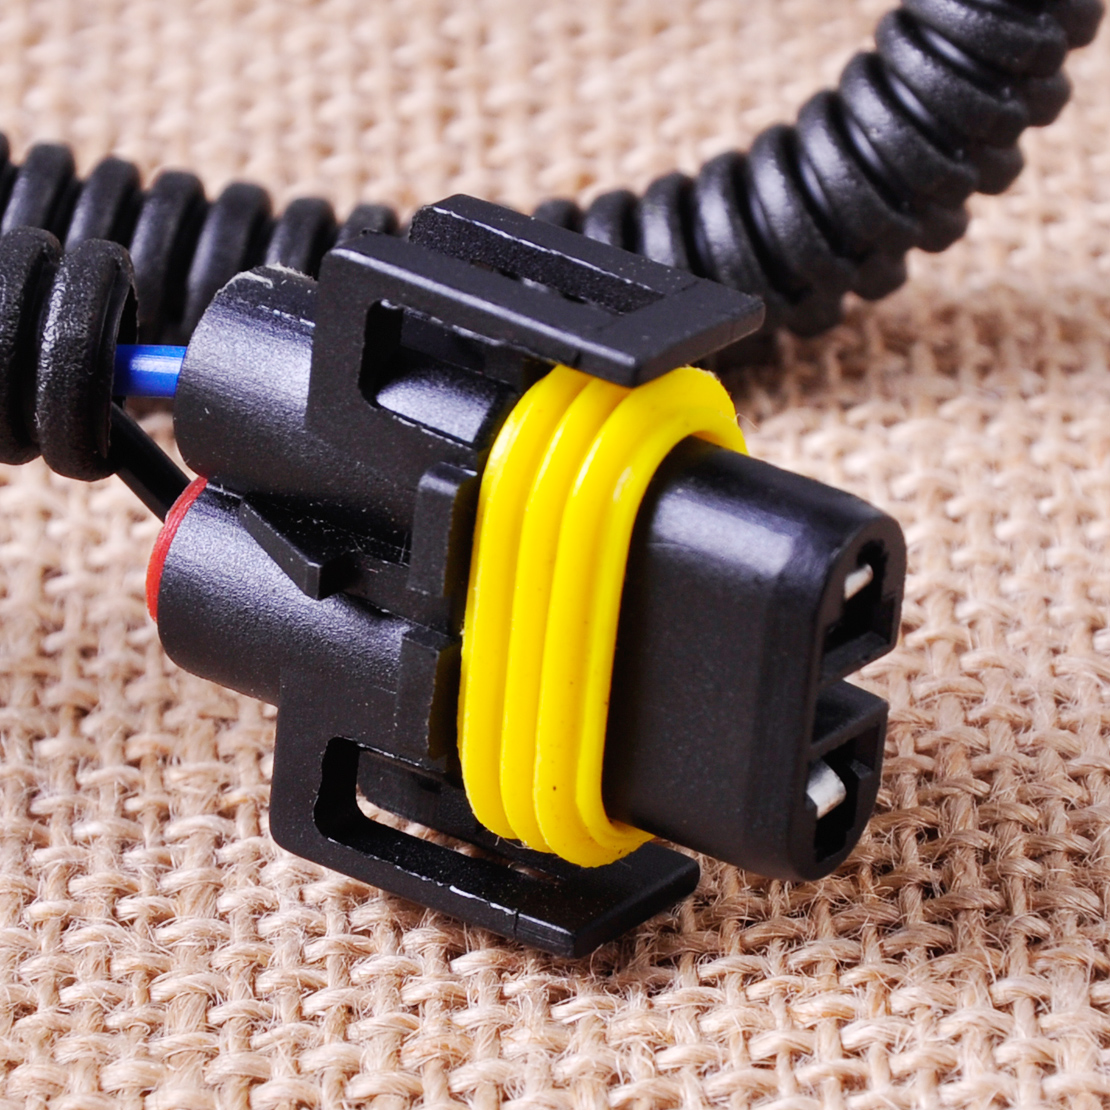 Citall H11 Female Fog Light Lamp Adapter Wiring Harness Sockets Wire Ford Focus Connectors Connector For Acura Rdx Nissan Cube Honda Cr V In From Automobiles